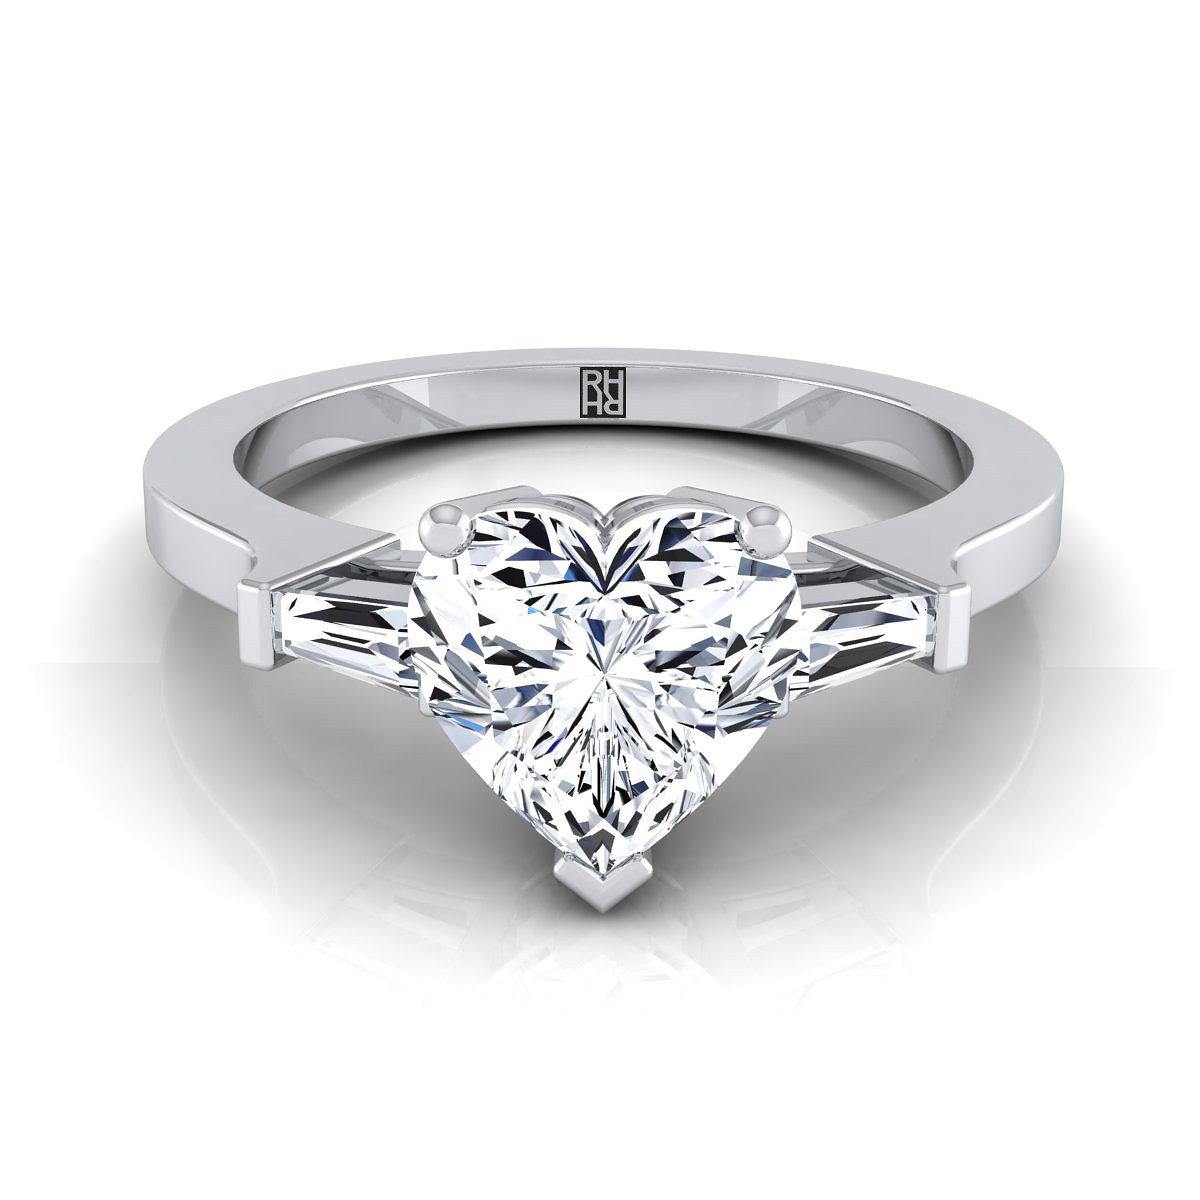 Featured Photo of Heart Shaped Engagement Rings With Tapered Baguette Side Stones